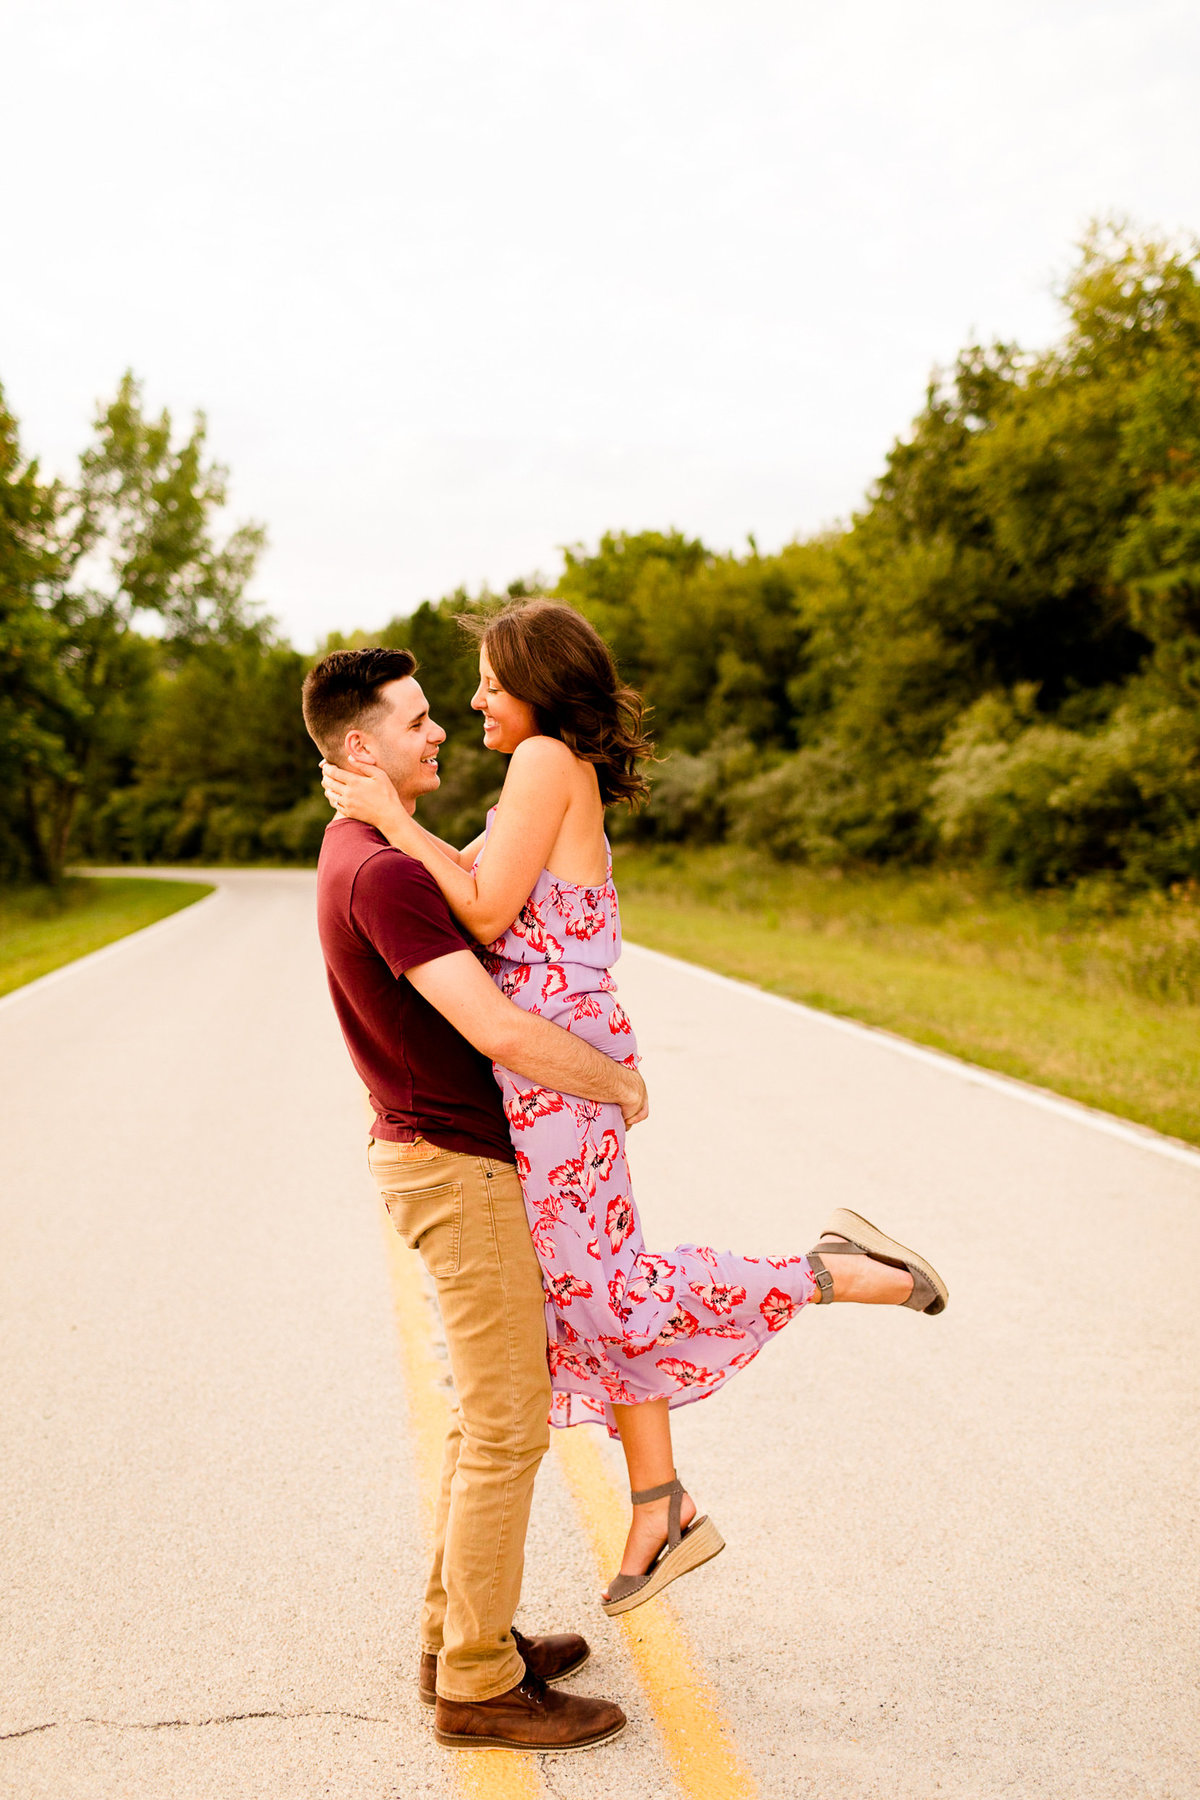 Caitlin and Luke Photography Wedding Engagement Luxury Illinois Destination Colorful Bright Joyful Cheerful Photographer 317